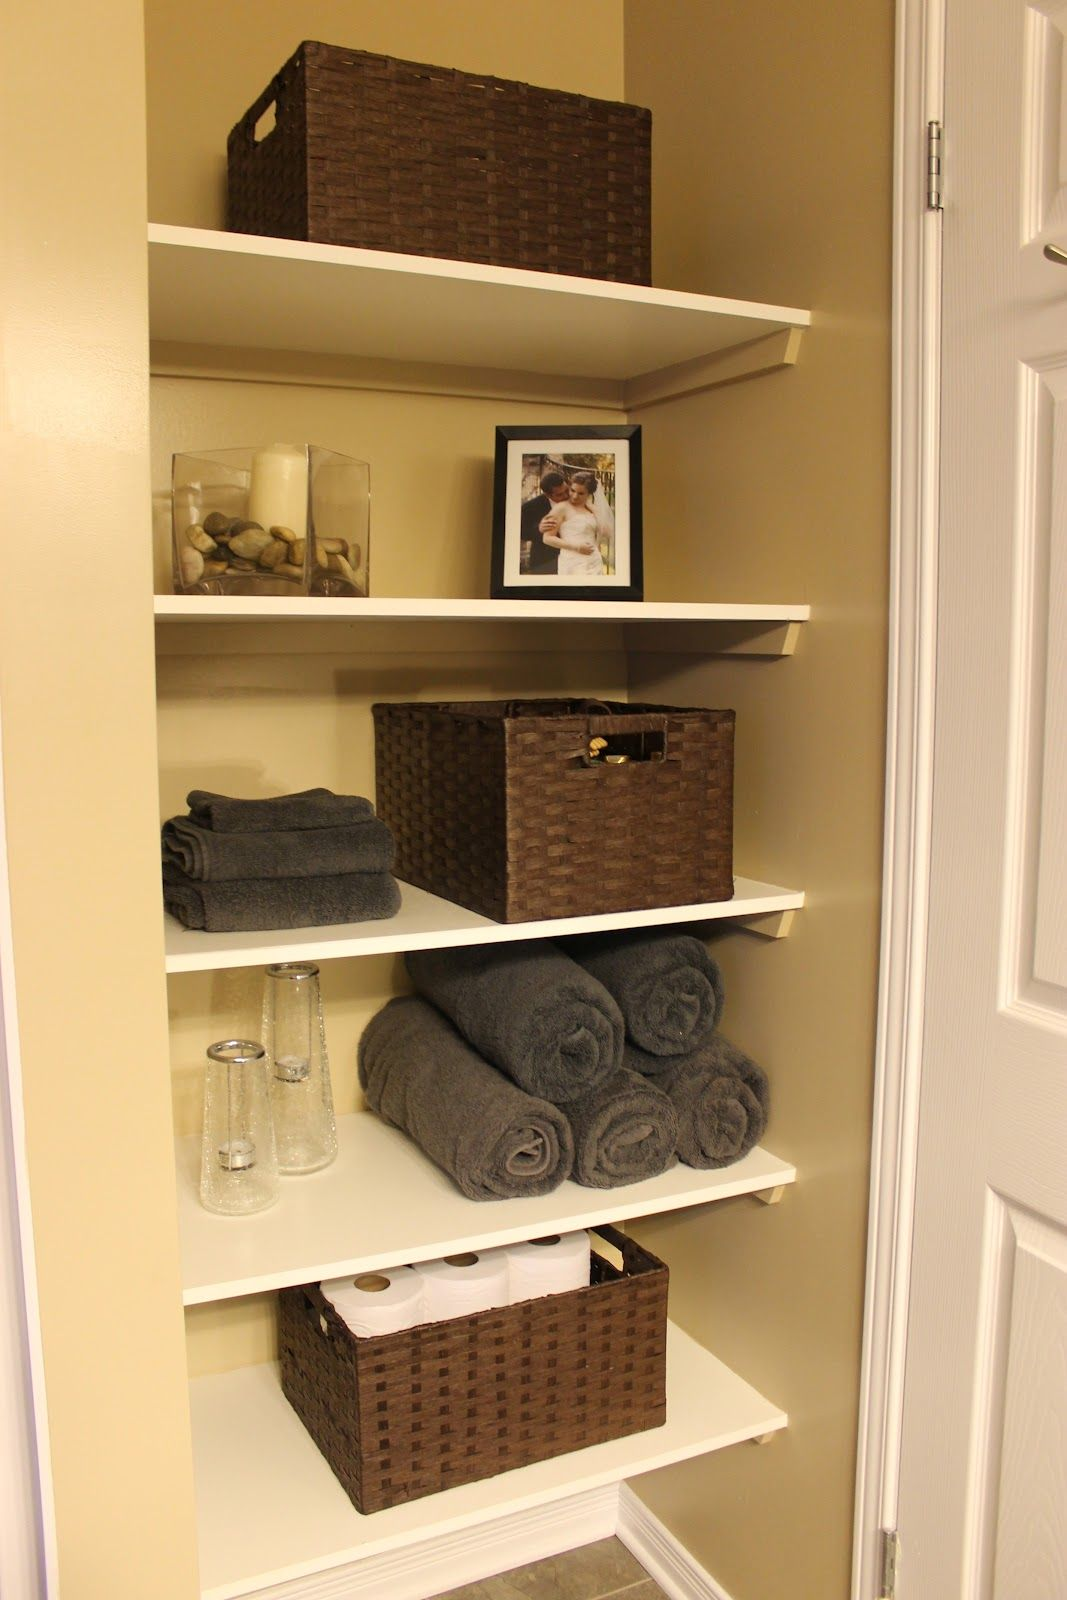 Km Decor Diy Organizing Open Shelving In A Bathroom Bo Same Type Arranged Facing Diffe Directions Towels Color Diffely